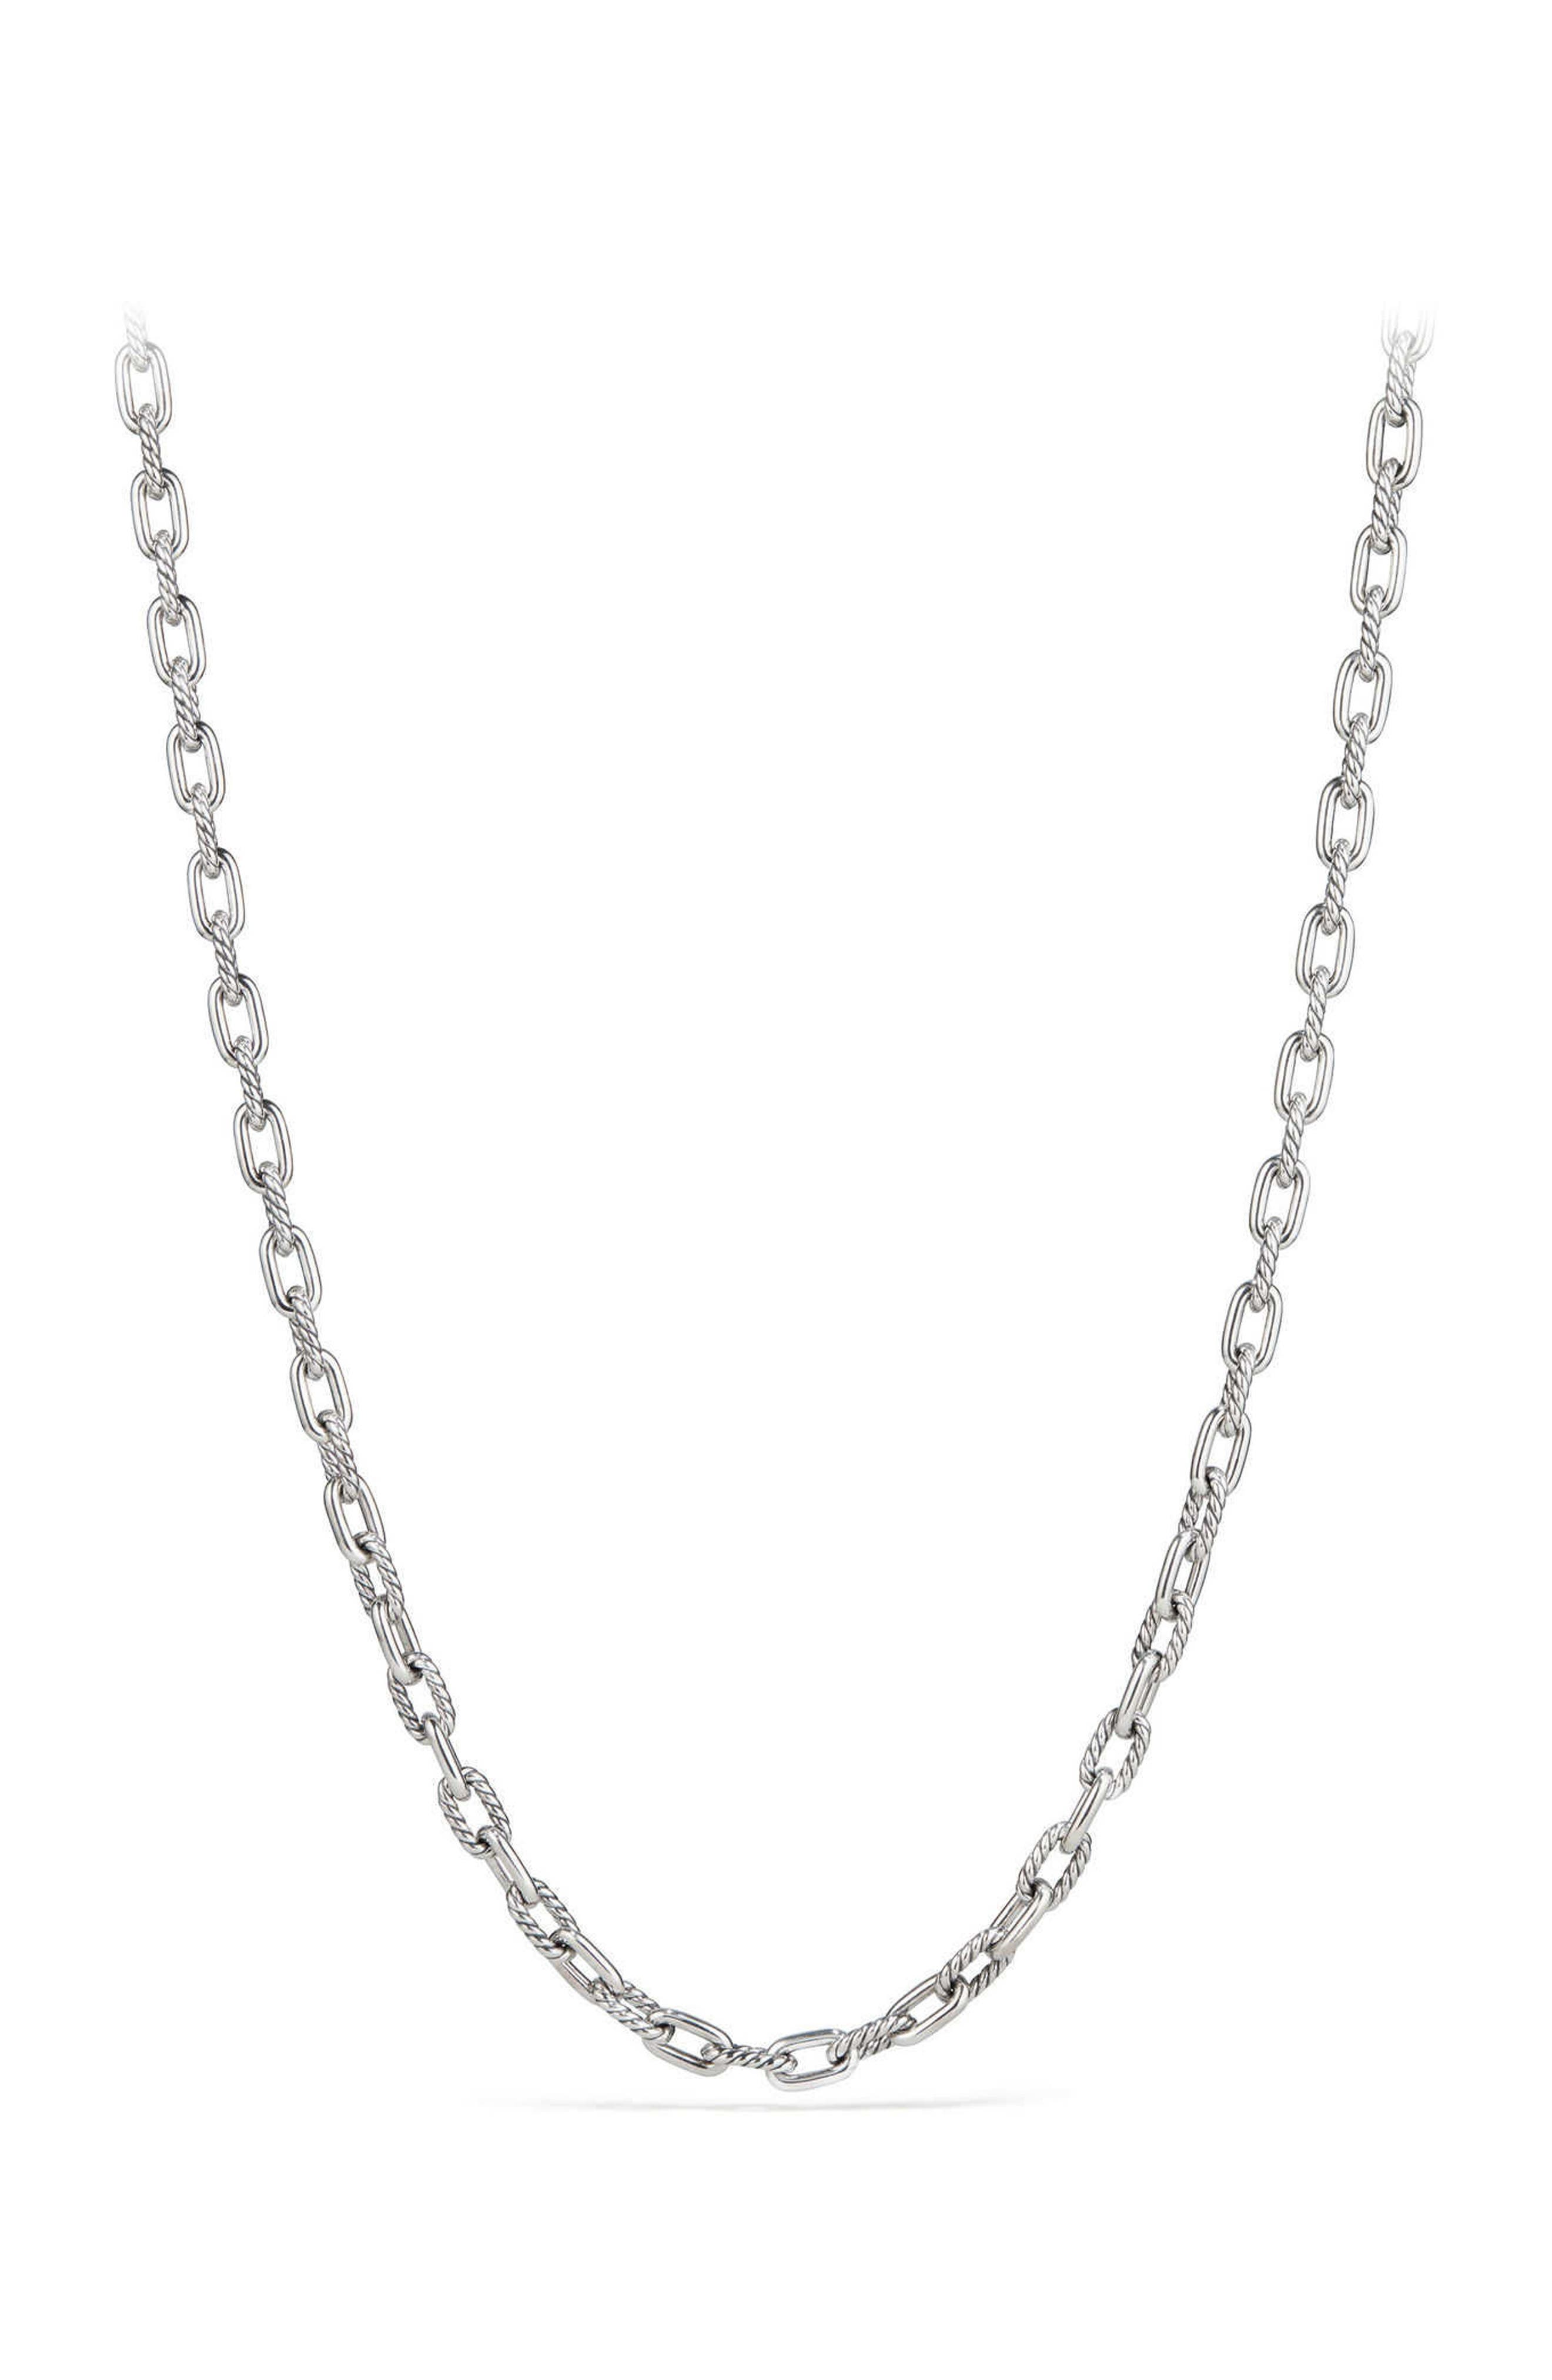 David Yurman DY Madison Extra Small Necklace